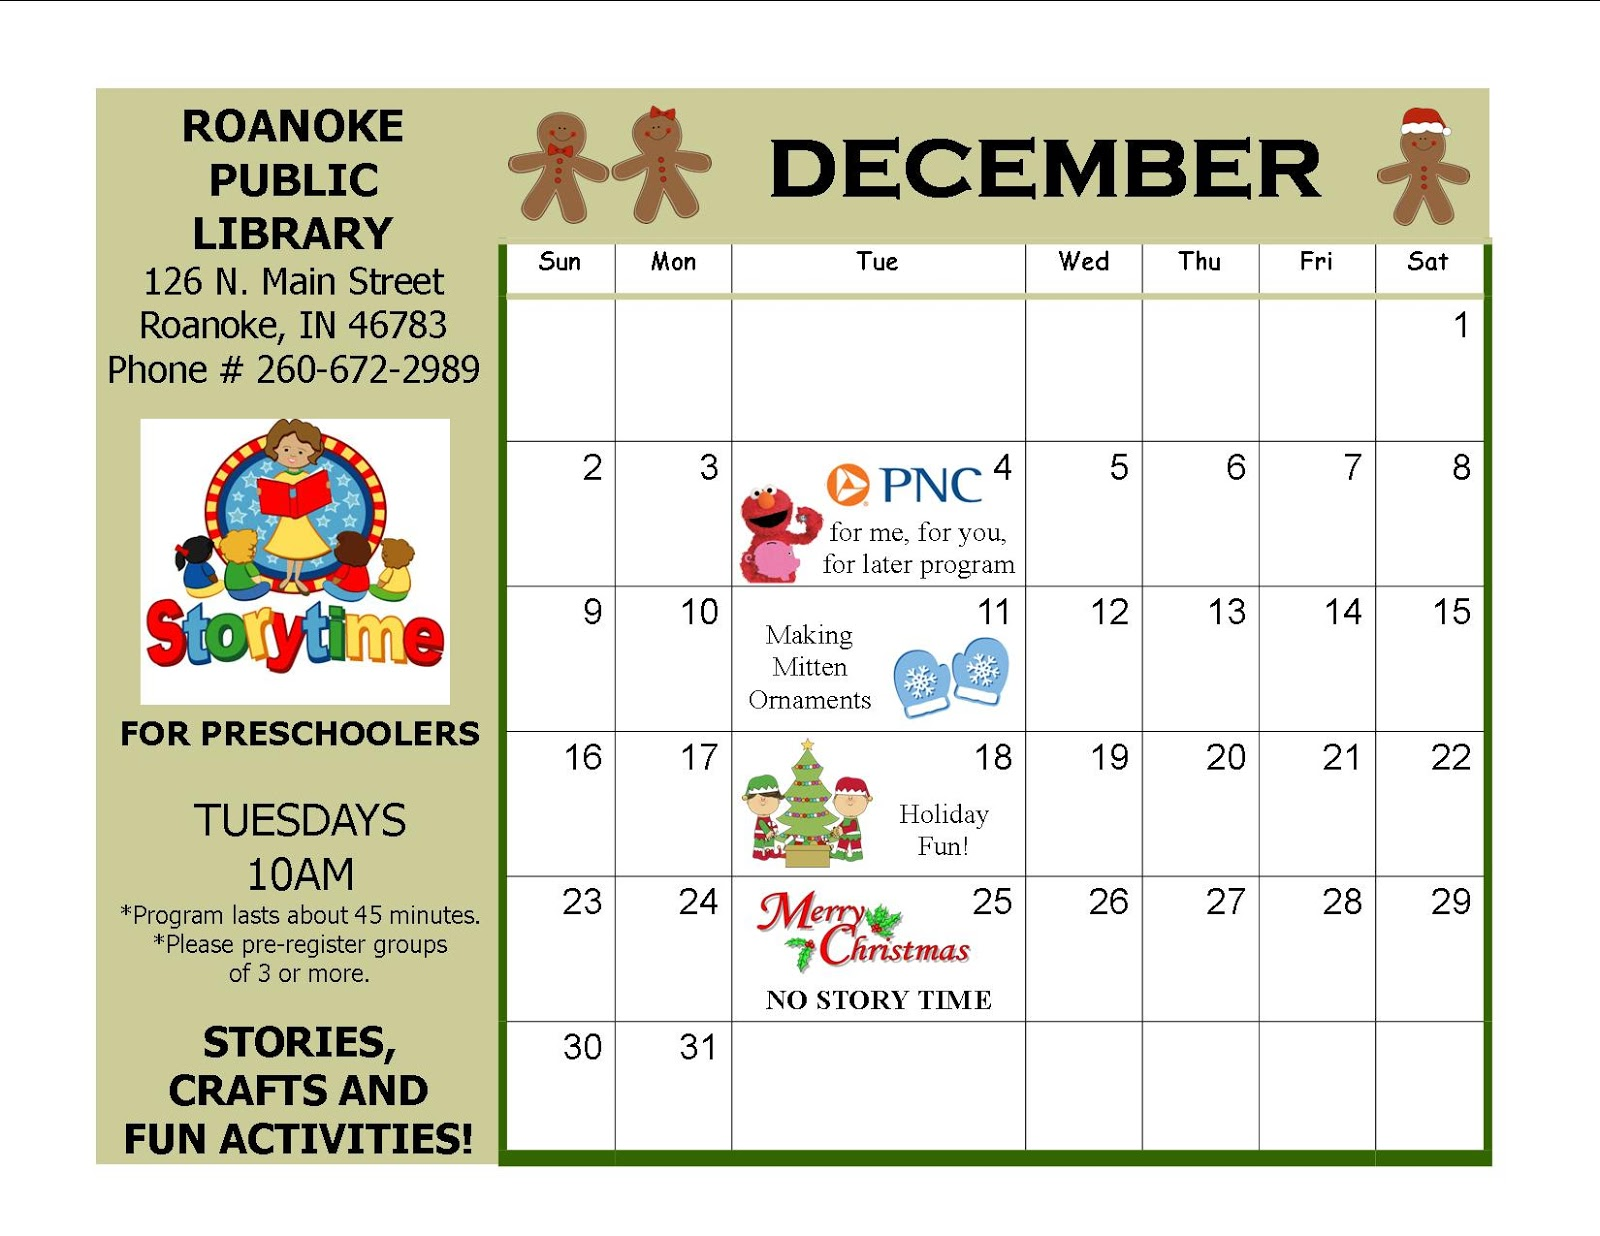 December Calendar Art Kindergarten : Roanoke public library december preschool calendar